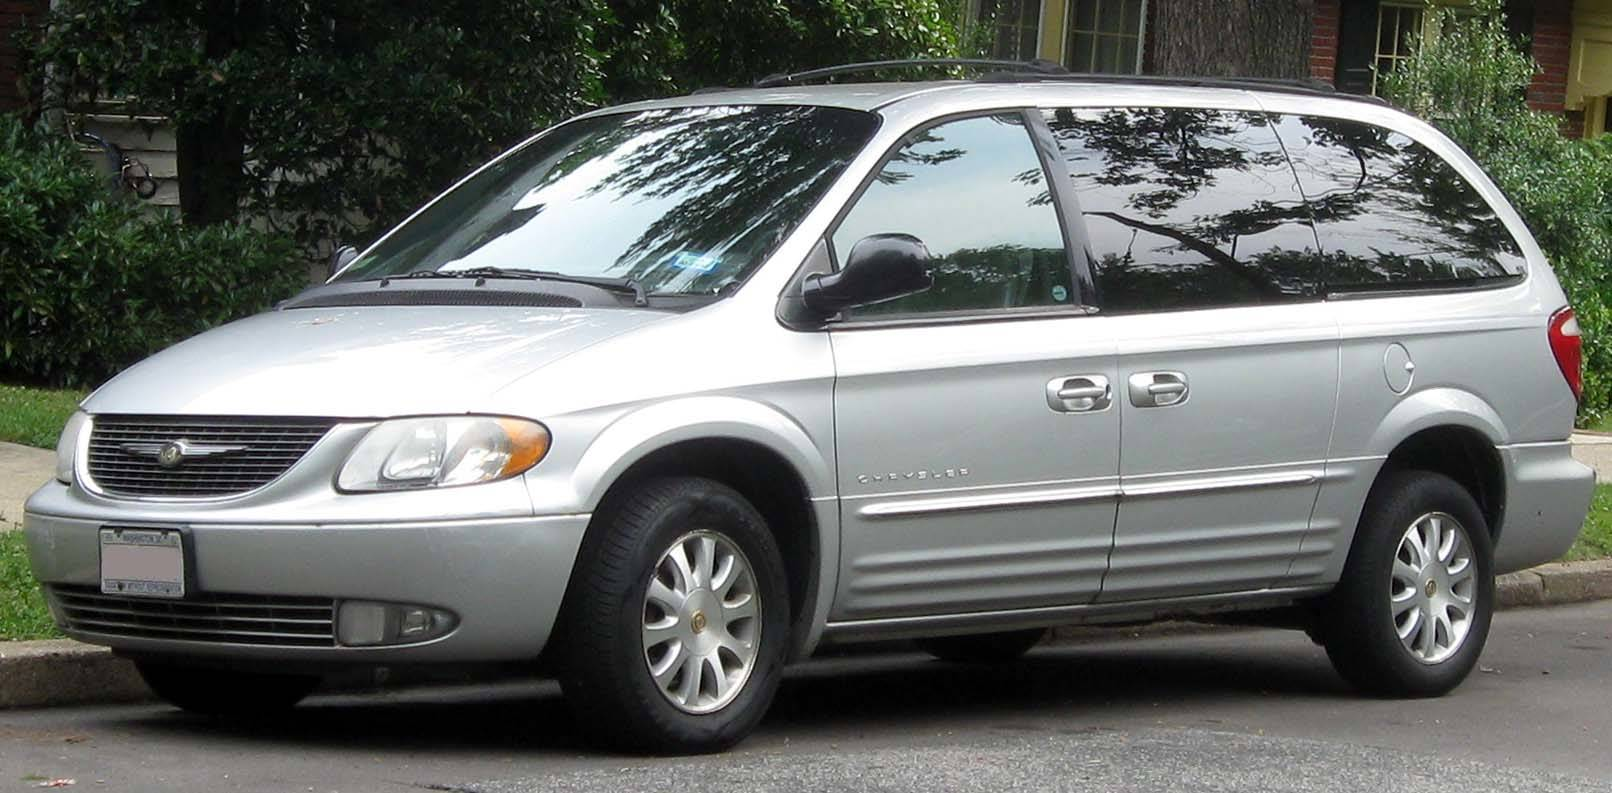 2011 chrysler town country limited front wheel drive lwb - 2001 chrysler town and country interior ...